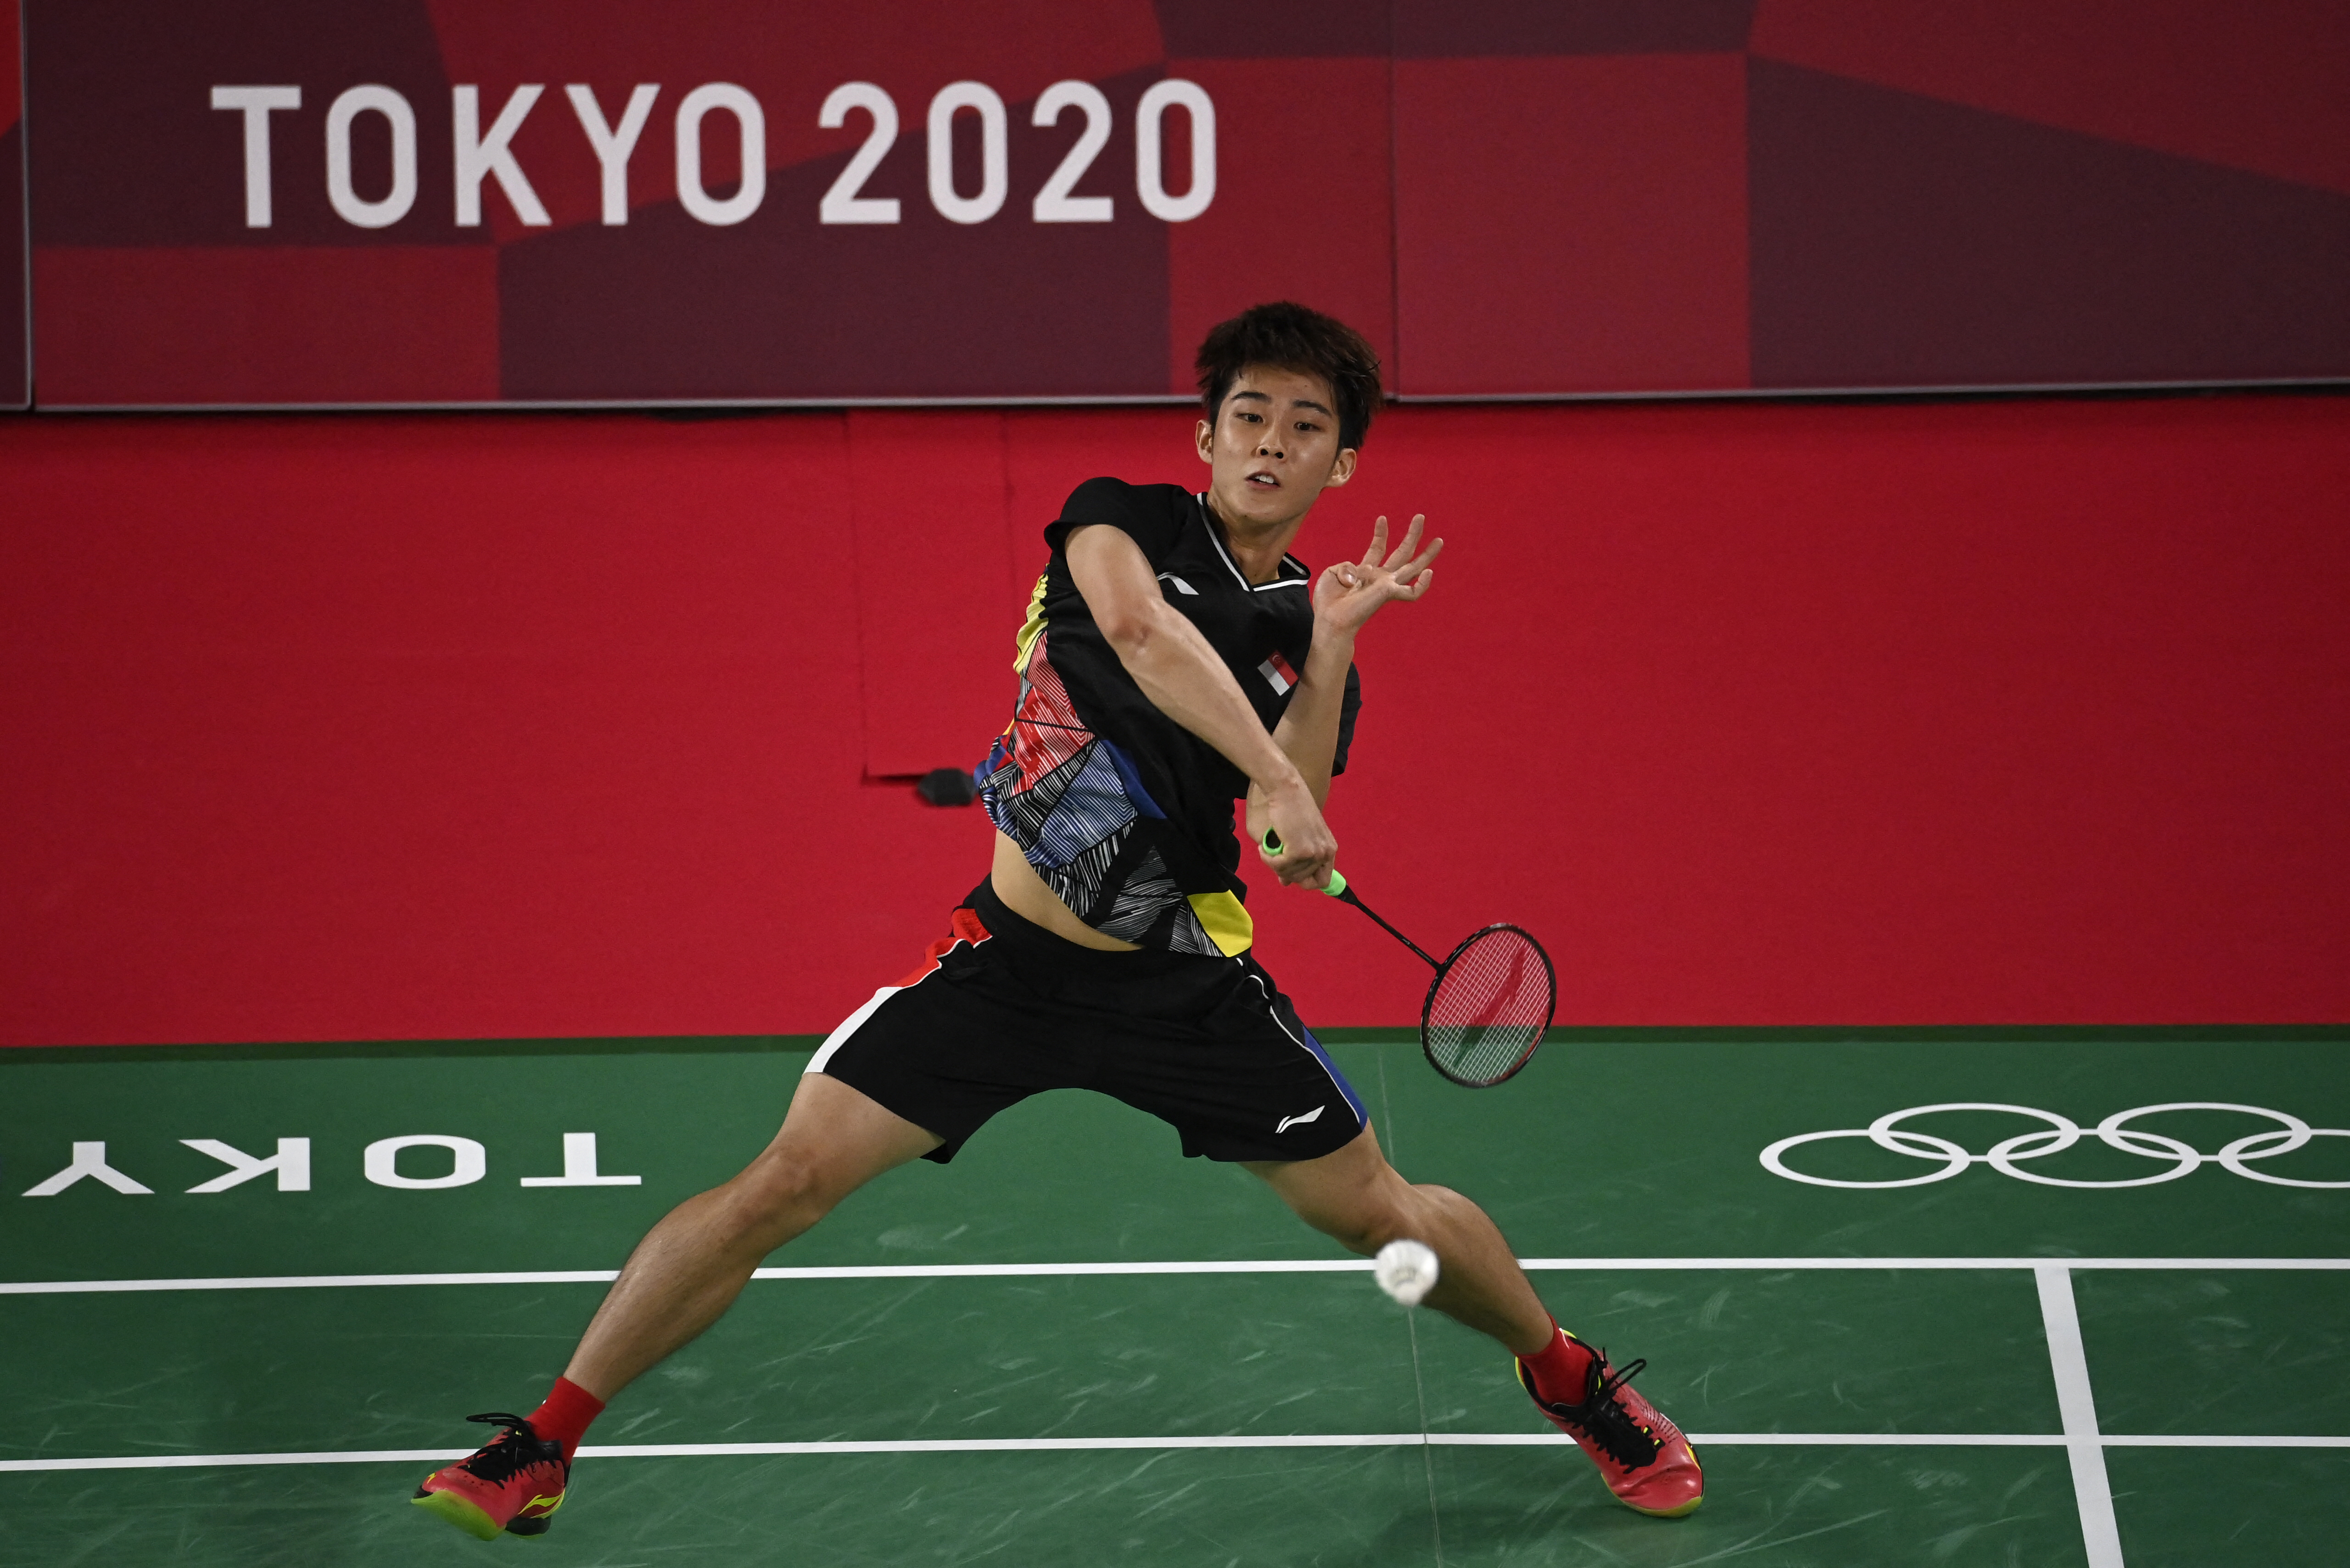 Tokyo 2020: TeamSG Shuttler Loh Kean Yew is victorious on his Olympic debut!